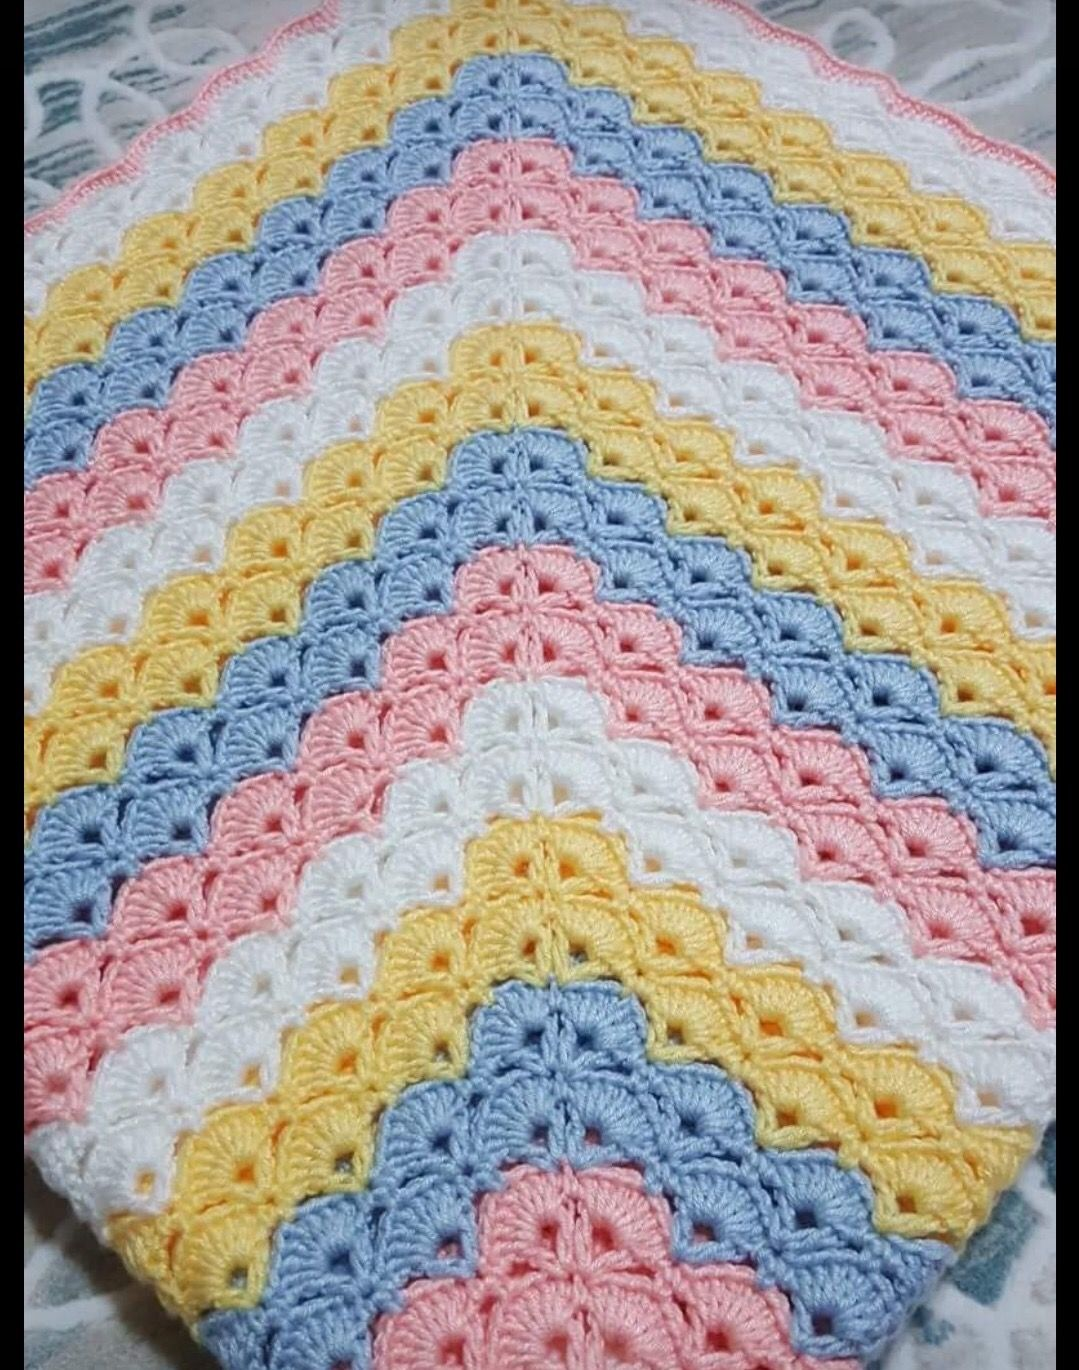 Pin von Sibel ☺ auf Crochet blankets, cloths and mop our | Pinterest